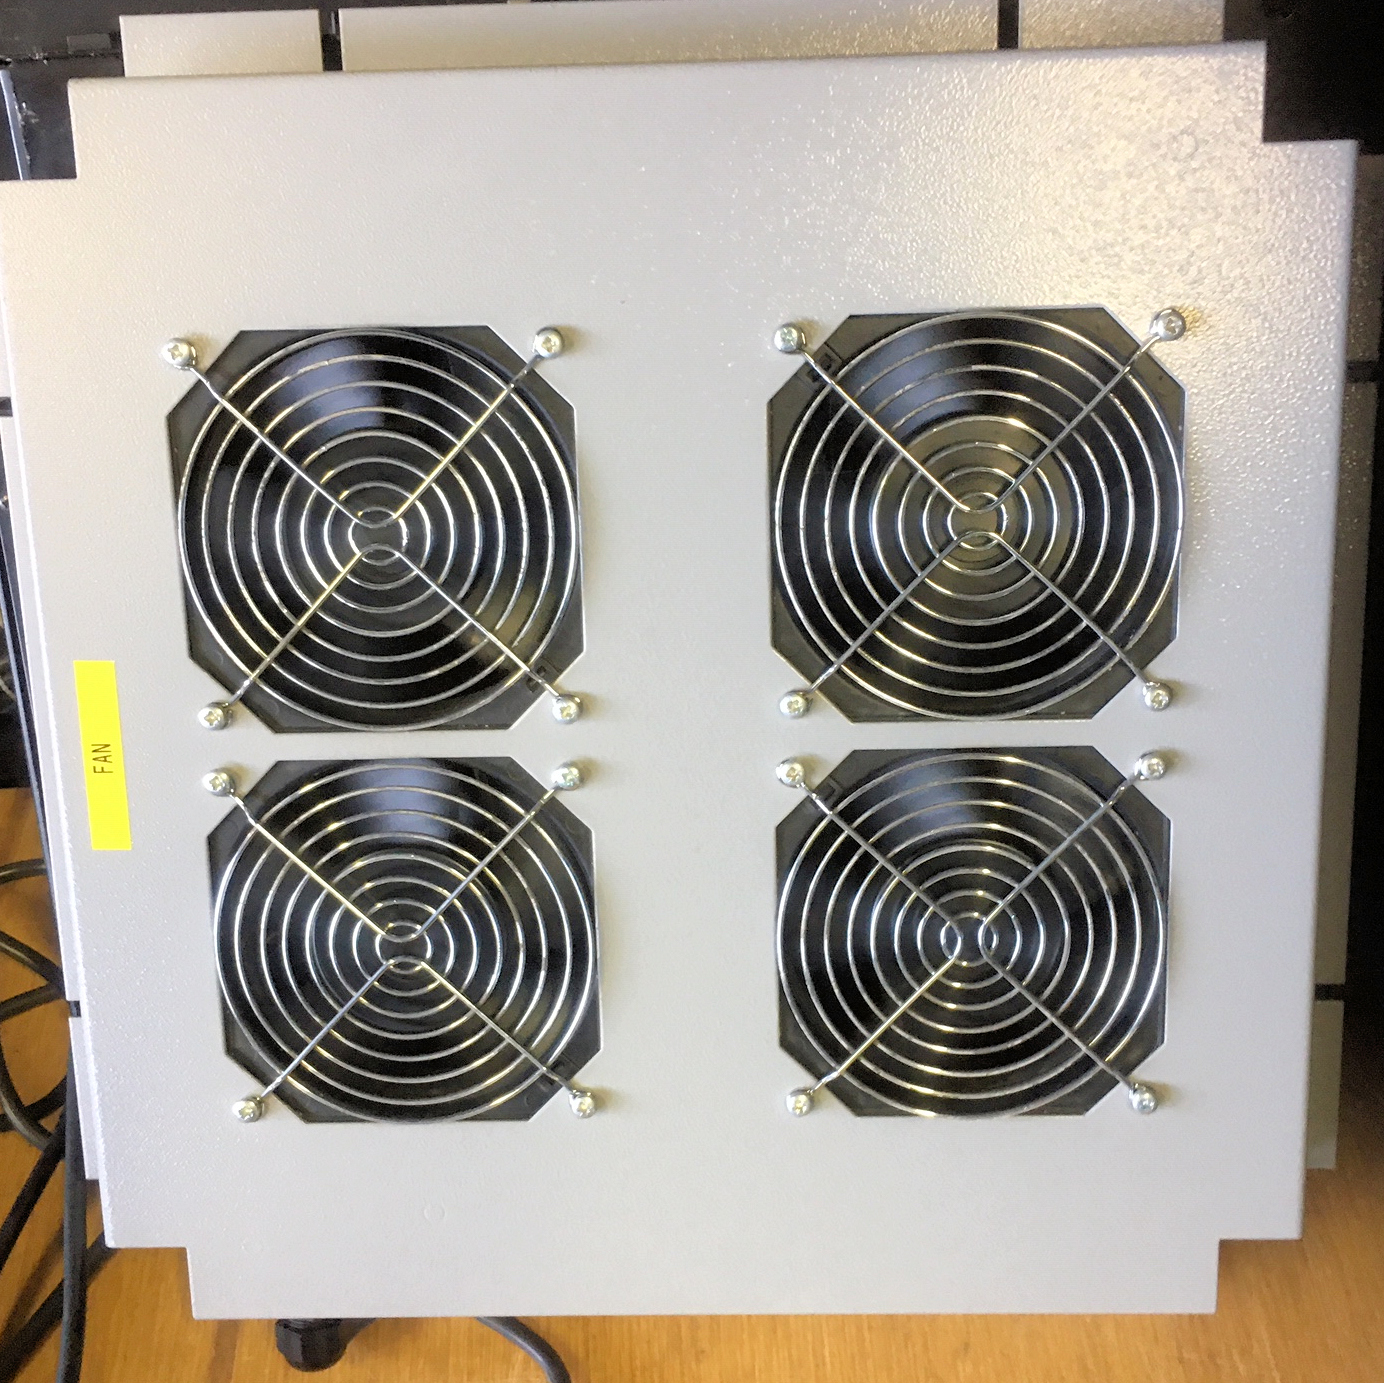 4 x 12 cm Sq. Fans running in frame viewed from the top